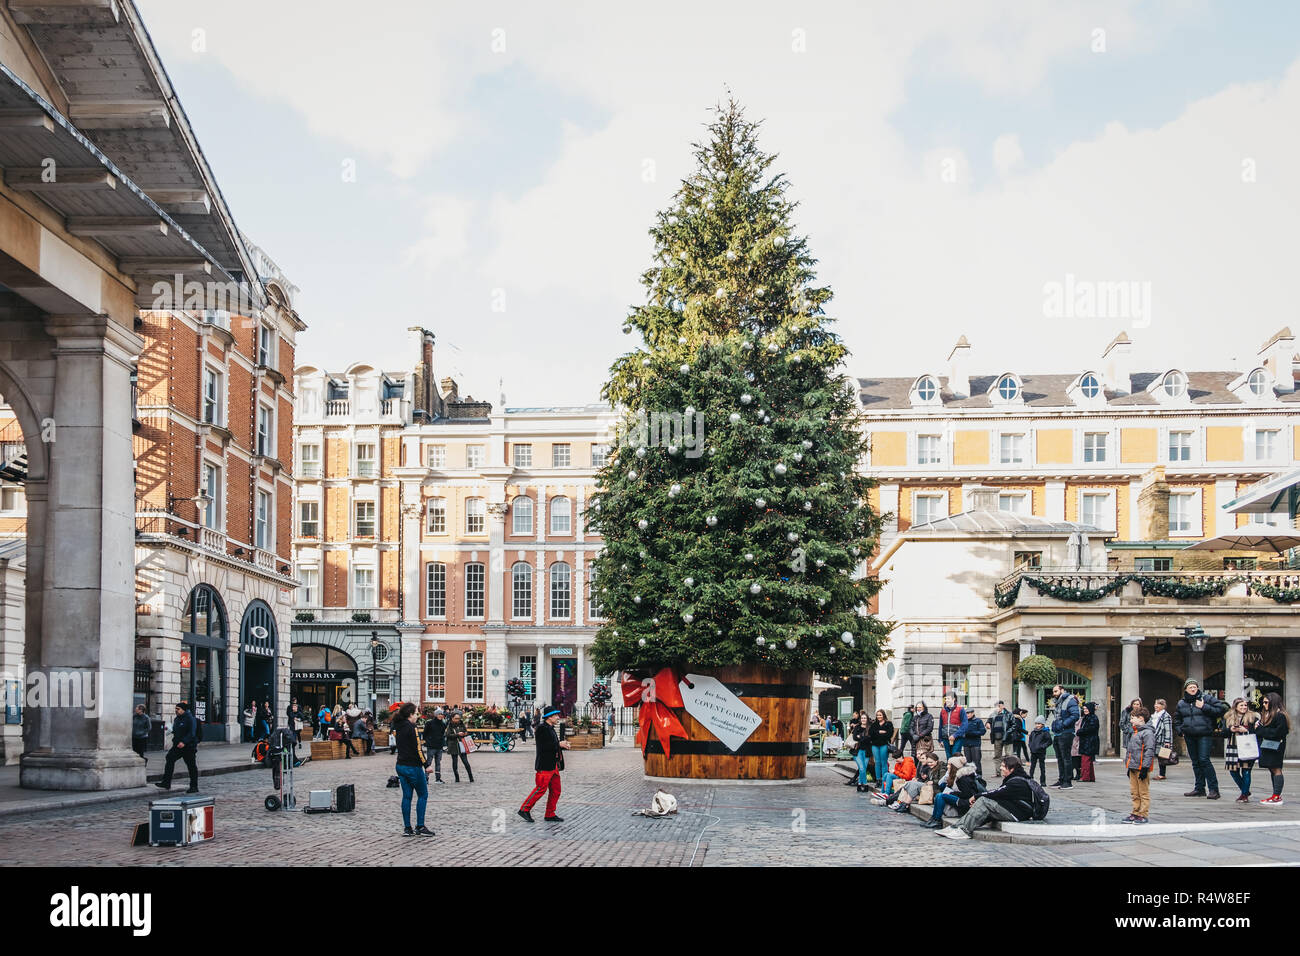 Giant Christmas Tree Stock Photos & Giant Christmas Tree